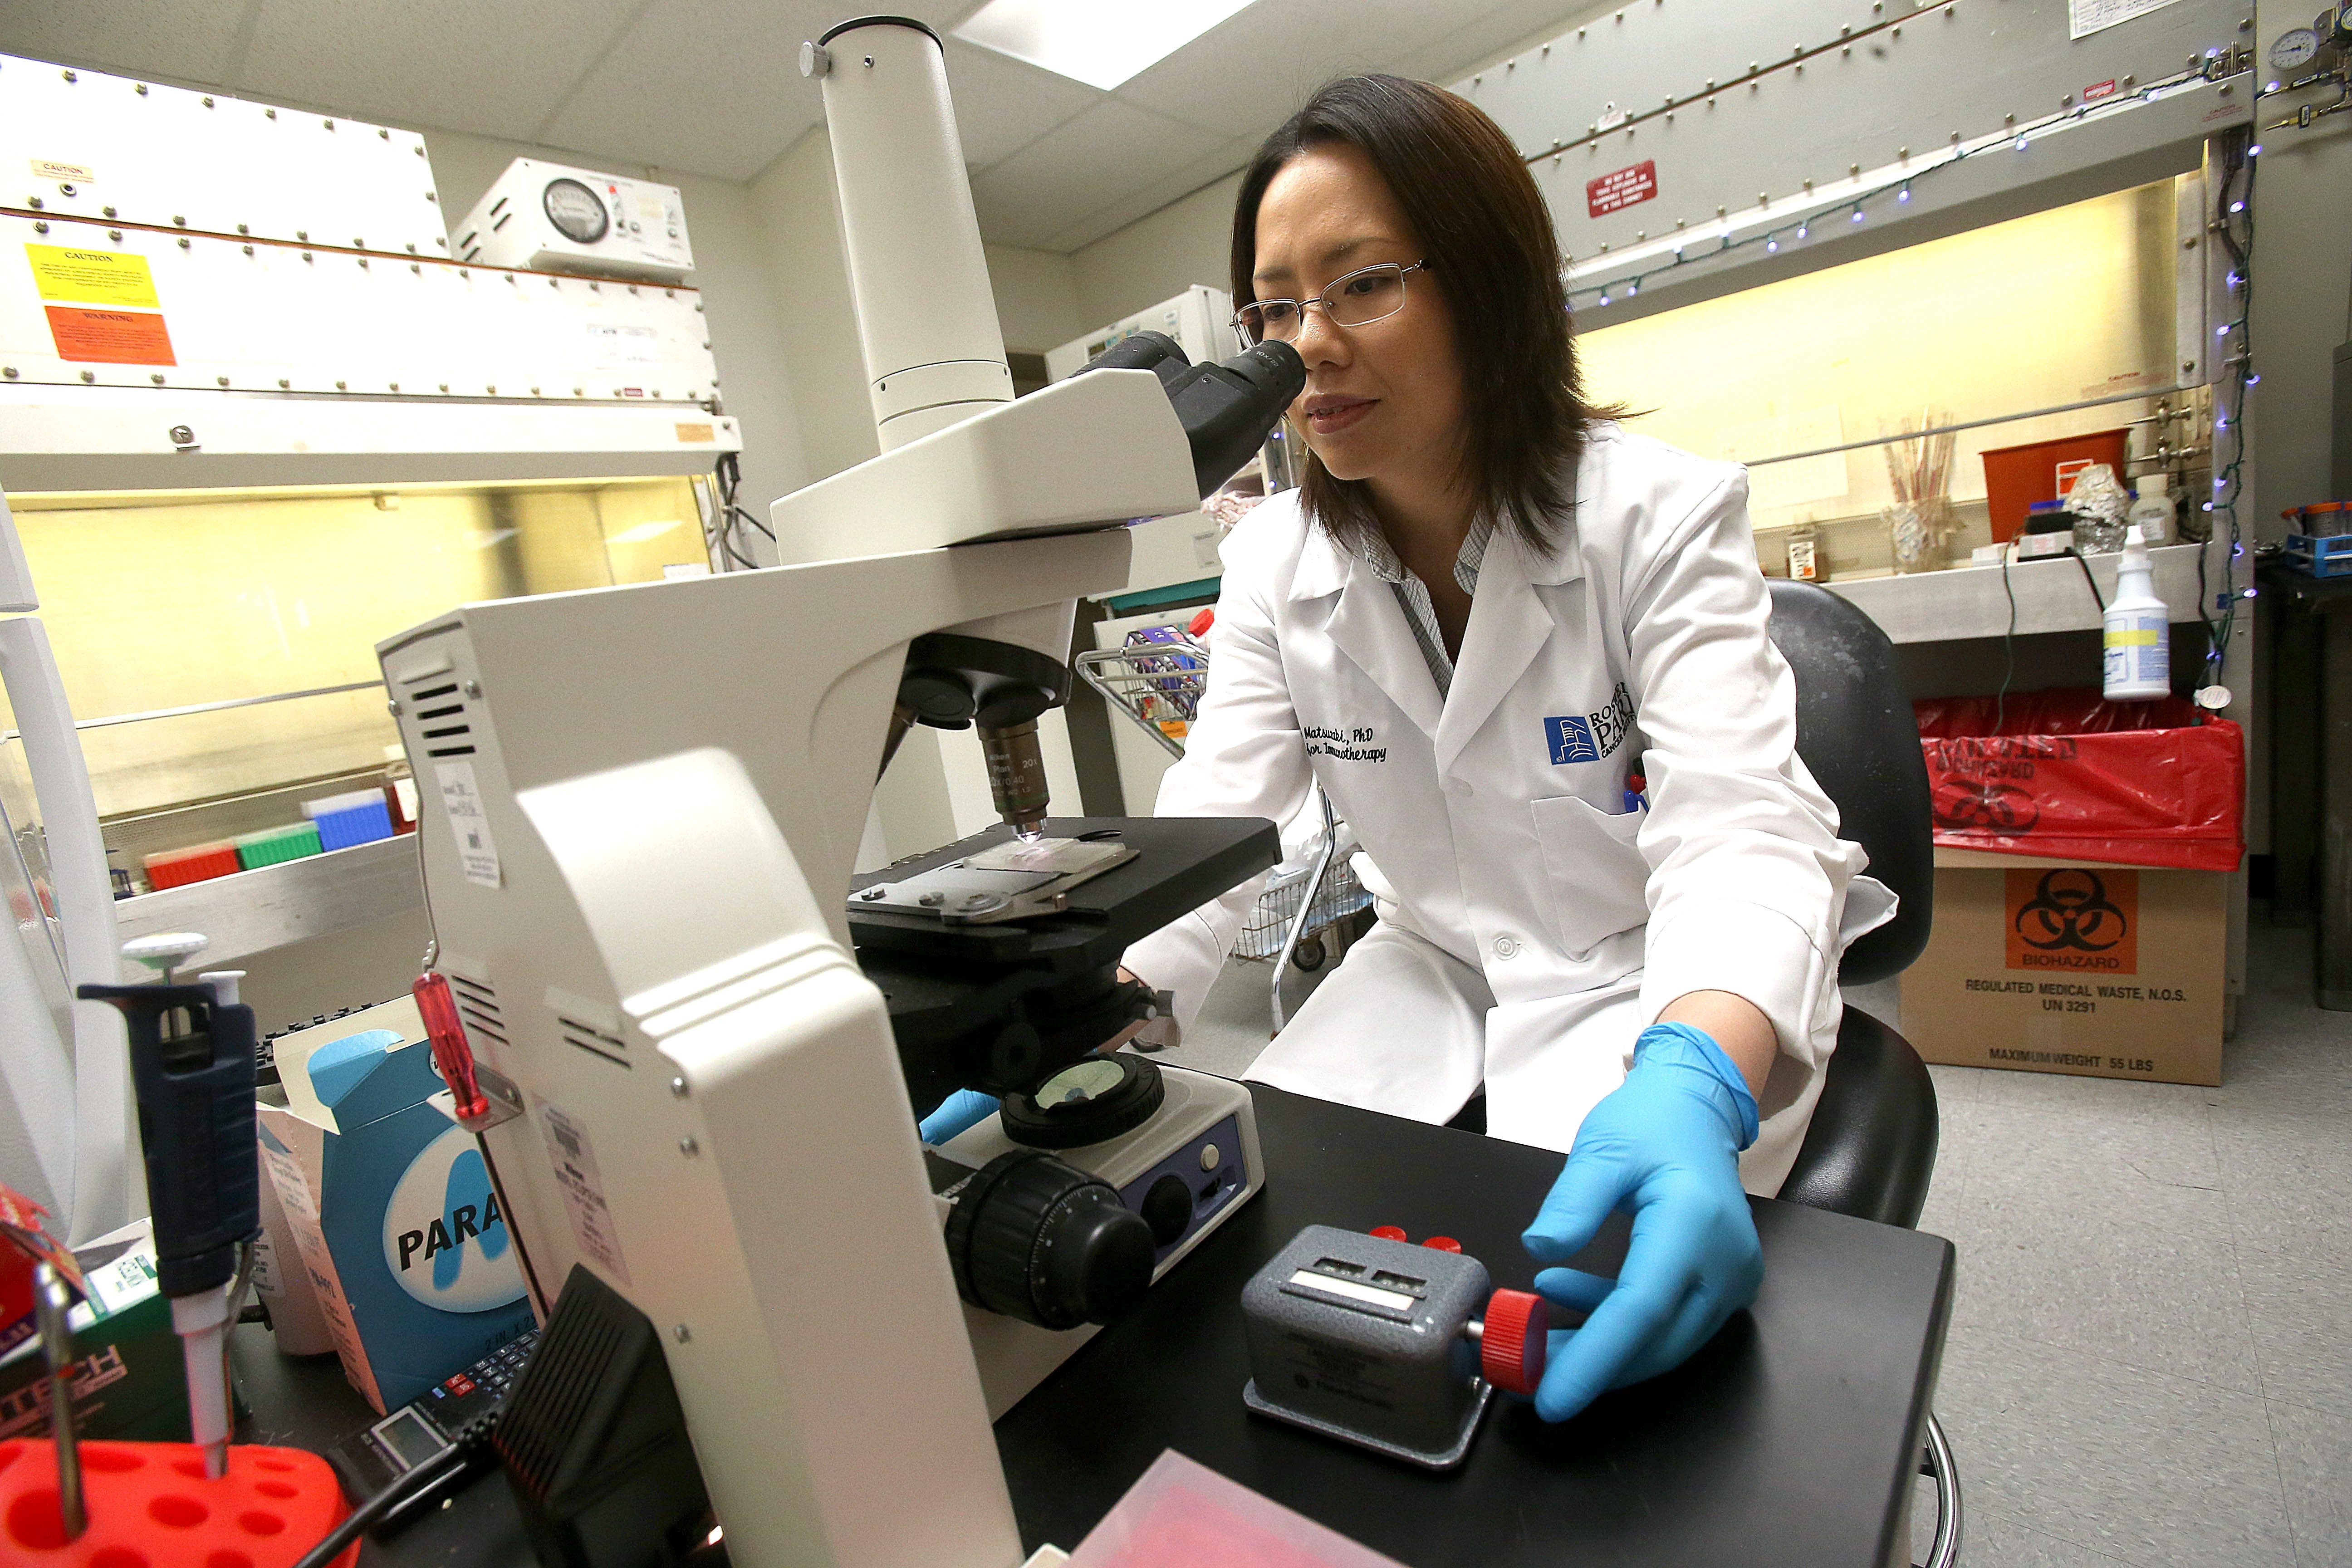 Roswell Park's Immune Analysis Facility director Dr. Junko Matsuzaki counts lymphocytes in a lab at the cancer center.